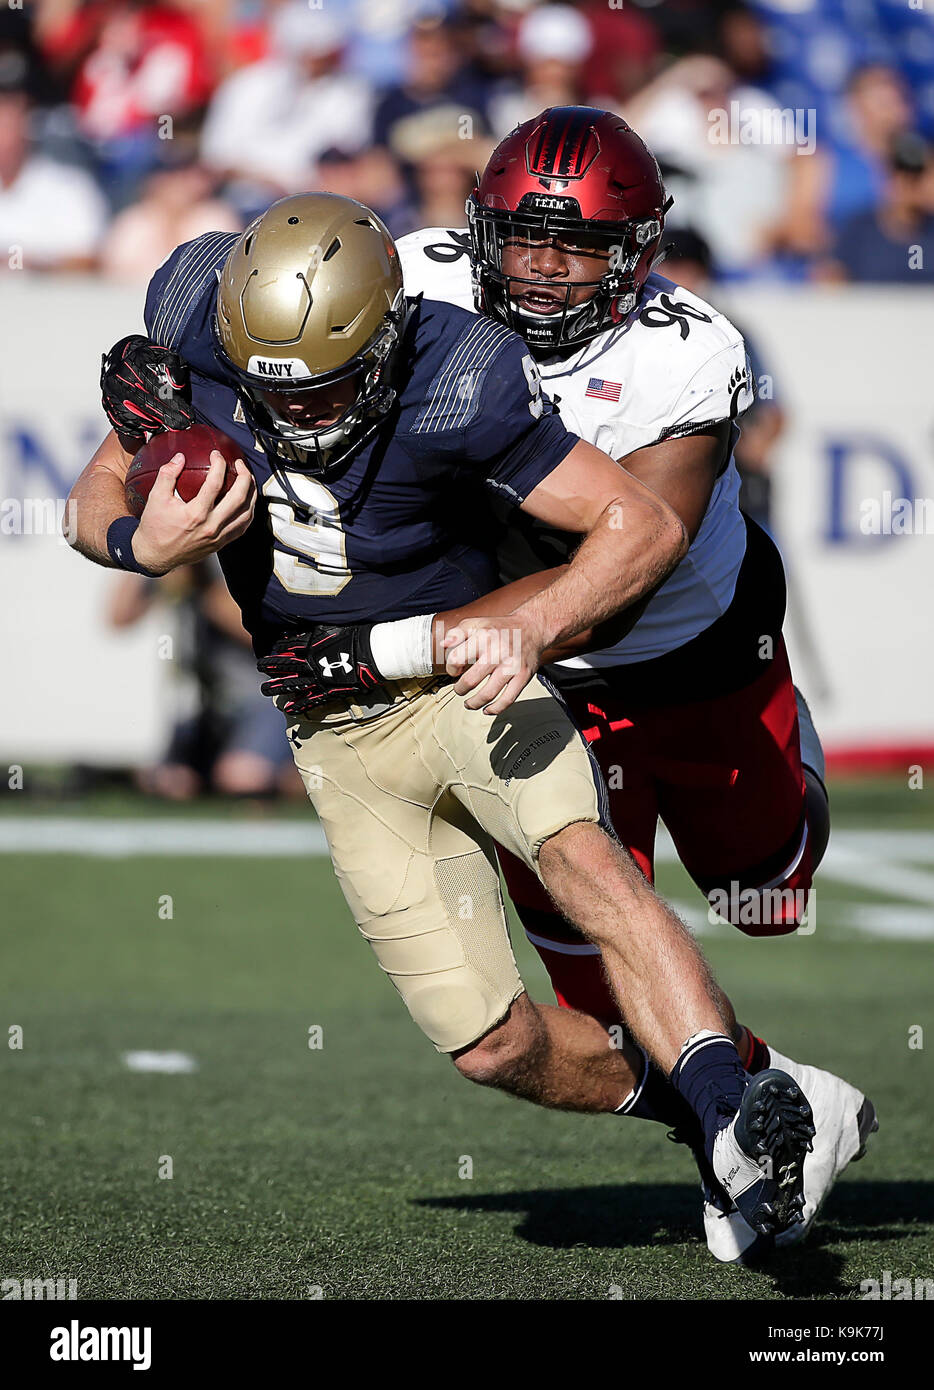 f5af576fa2b46e Cincinnati Bearcats DT  96 Cortez Broughton sacked United States Naval  Academy QB  9 Zach Abey during a NCAA football game between the United  States Naval ...